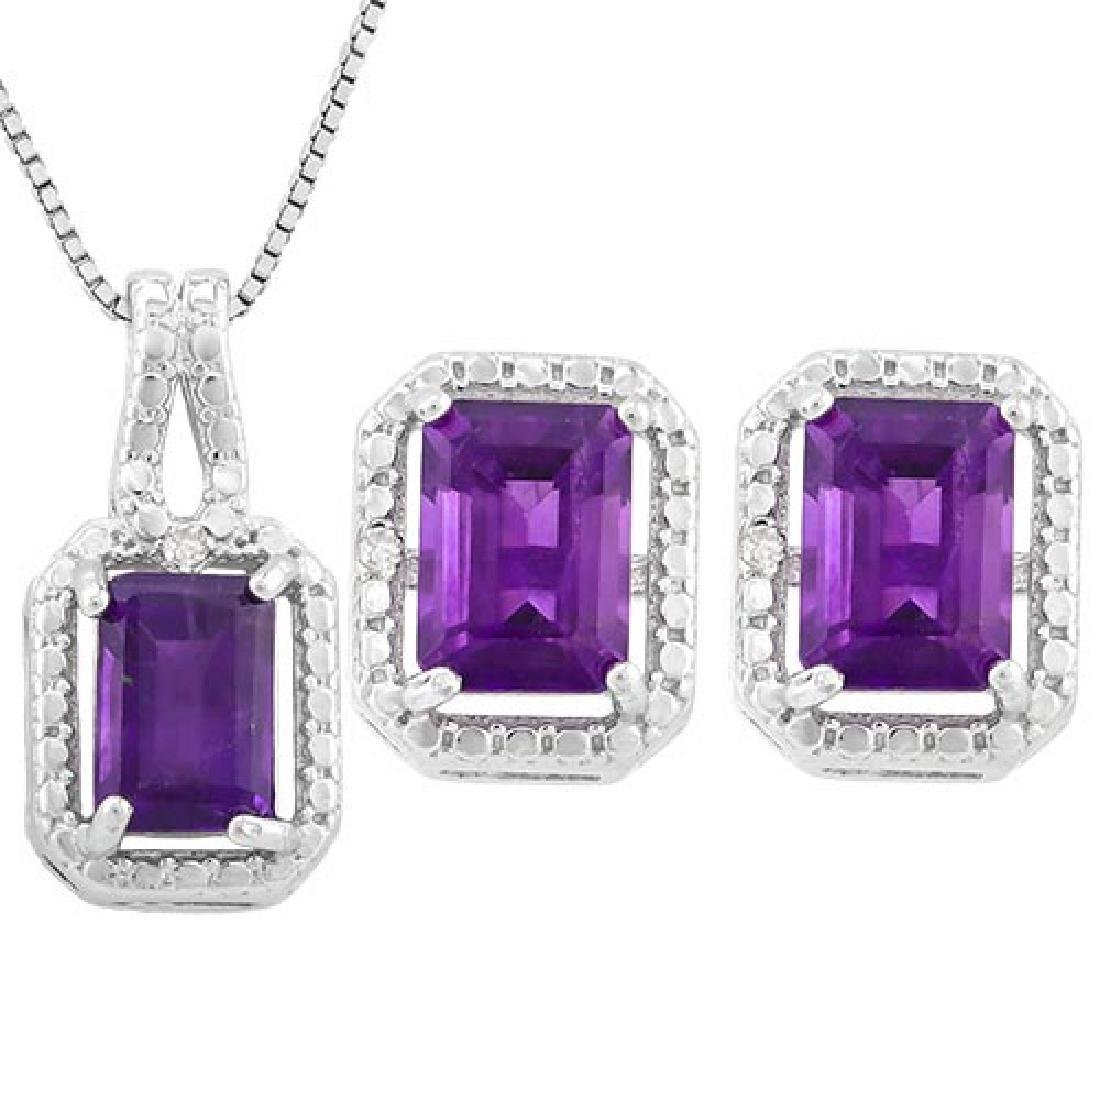 3 CARAT AMETHYST & DIAMOND 925 STERLING SILVER SET